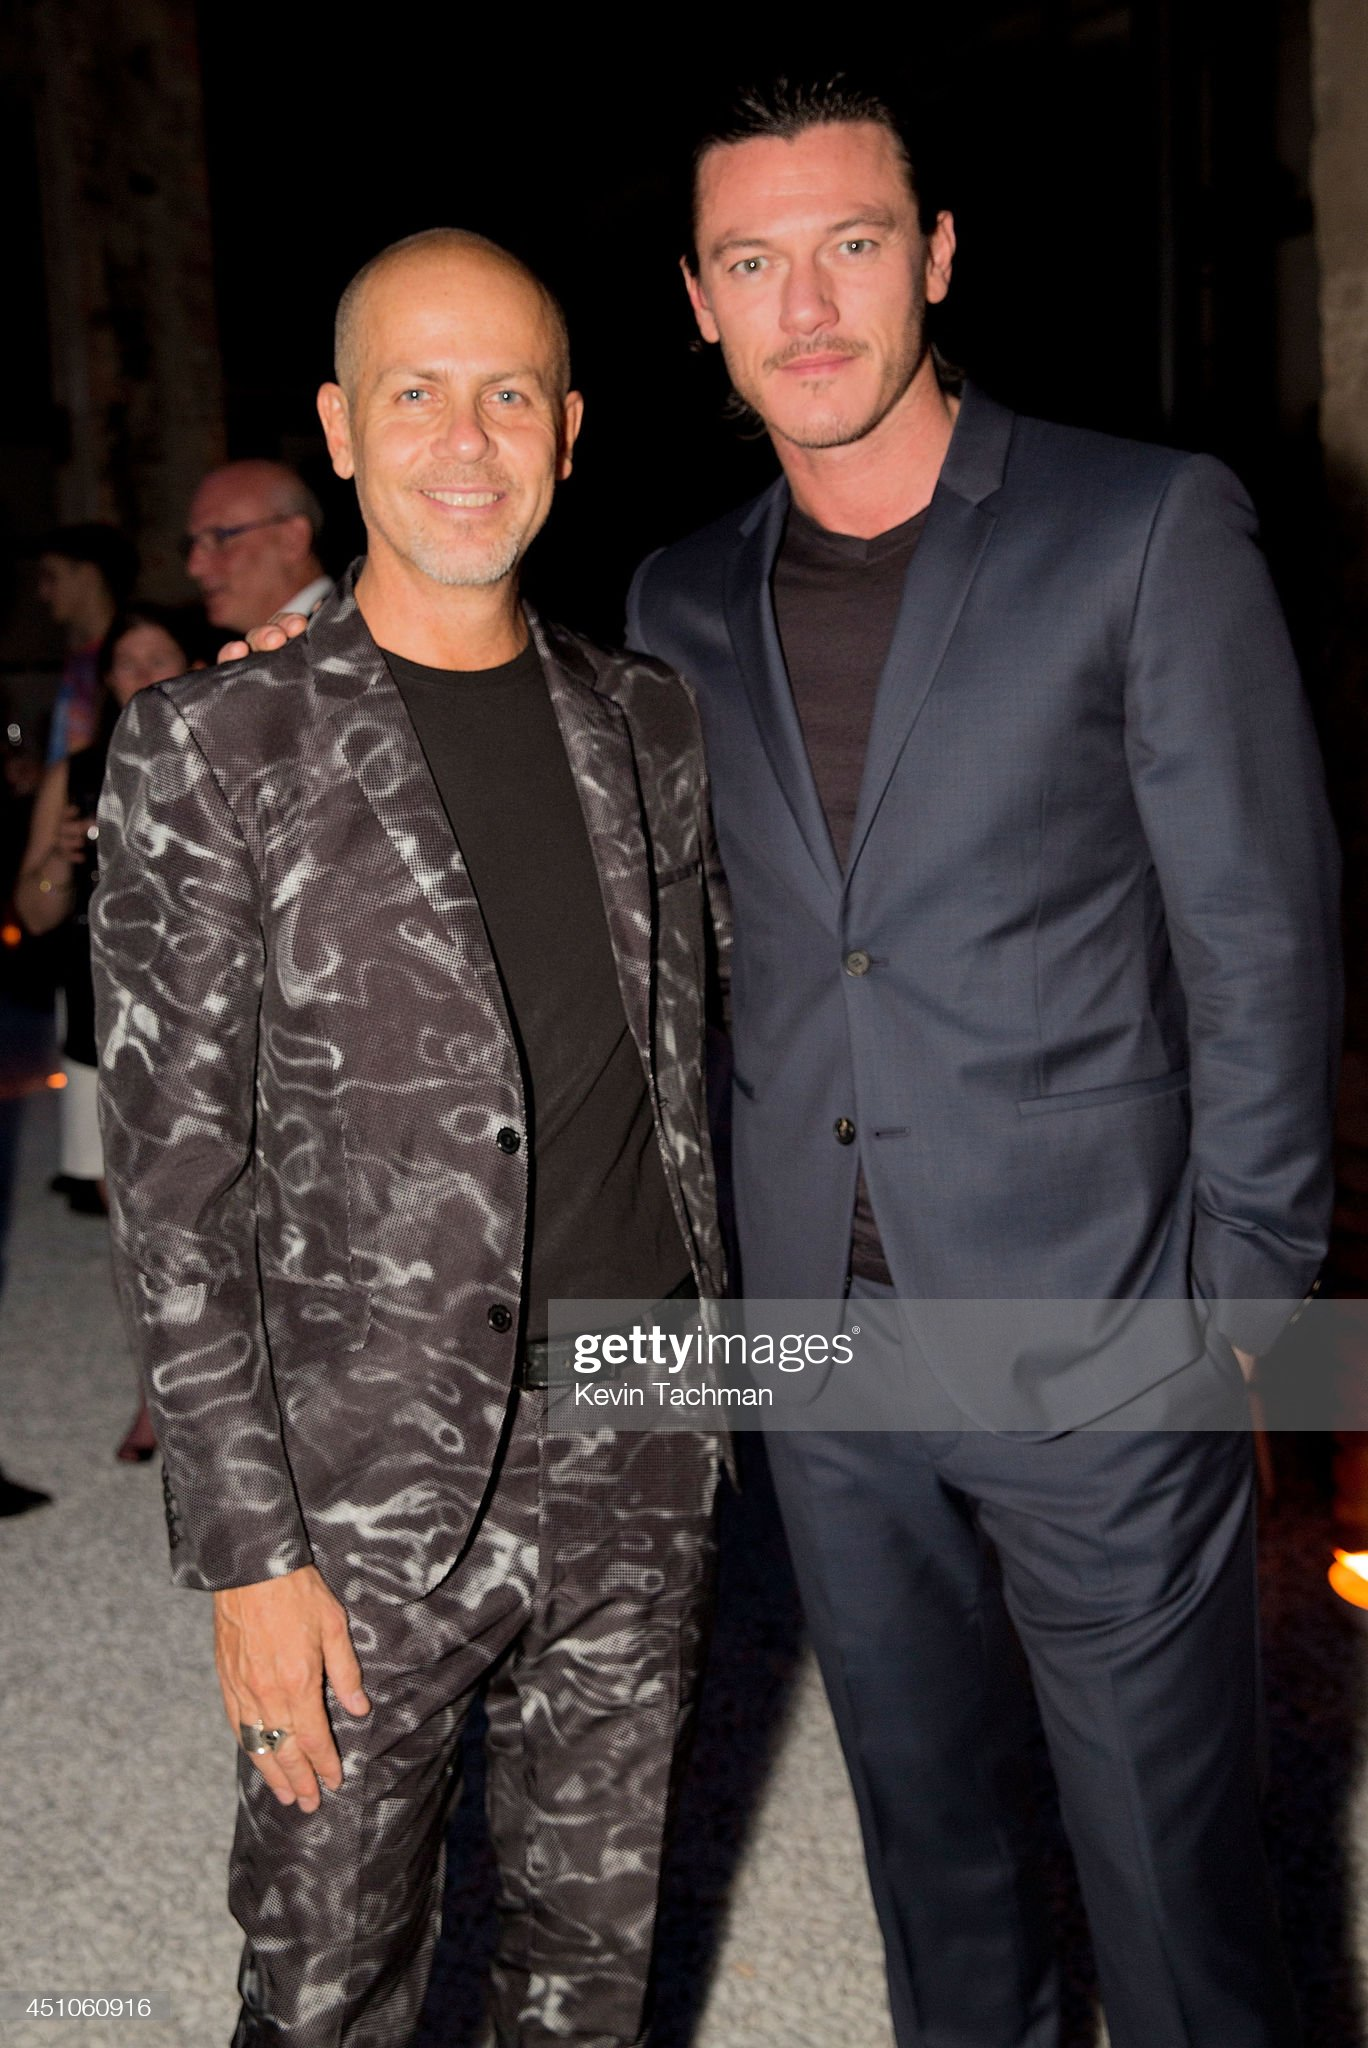 ¿Cuánto mide Italo Zucchelli? - Altura - Real height Creative-director-italo-zucchelli-and-luke-evans-attend-a-celebration-picture-id451060916?s=2048x2048